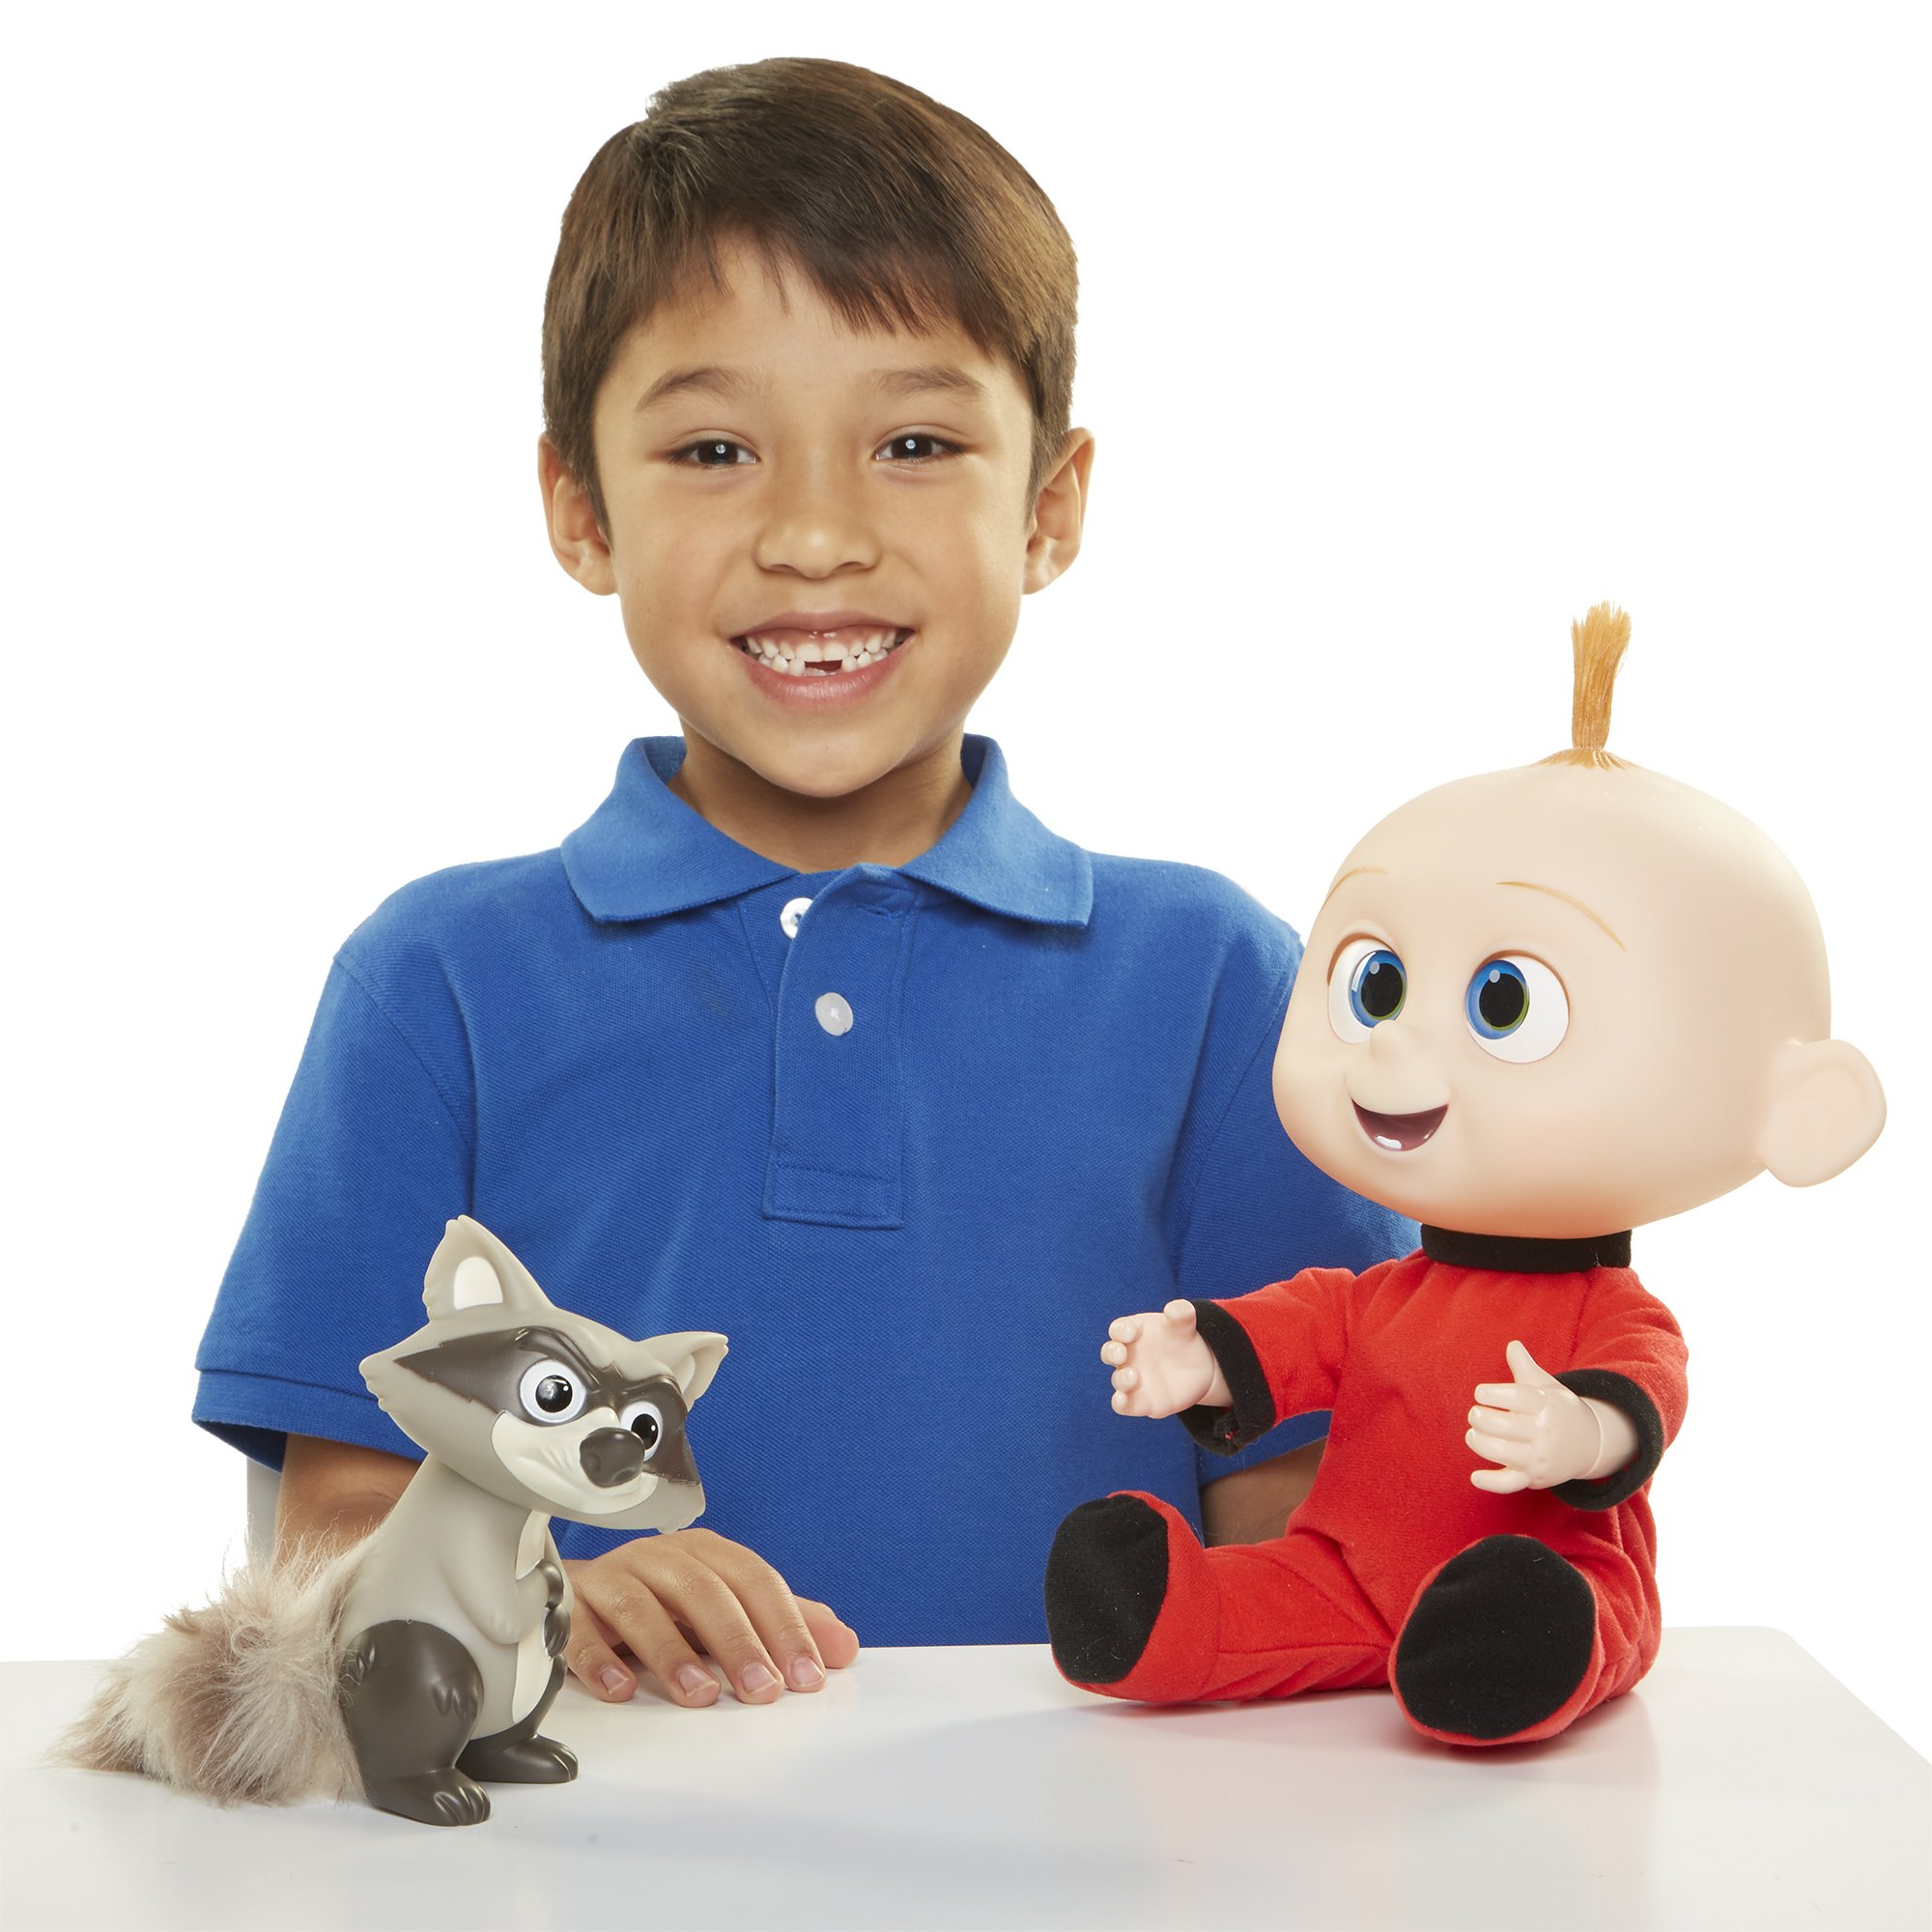 The Incredibles 2 Jack-Jack Plush-Figure Features Lights & Sounds and comes with Raccoon Toy by The Incredibles 2 (Image #12)